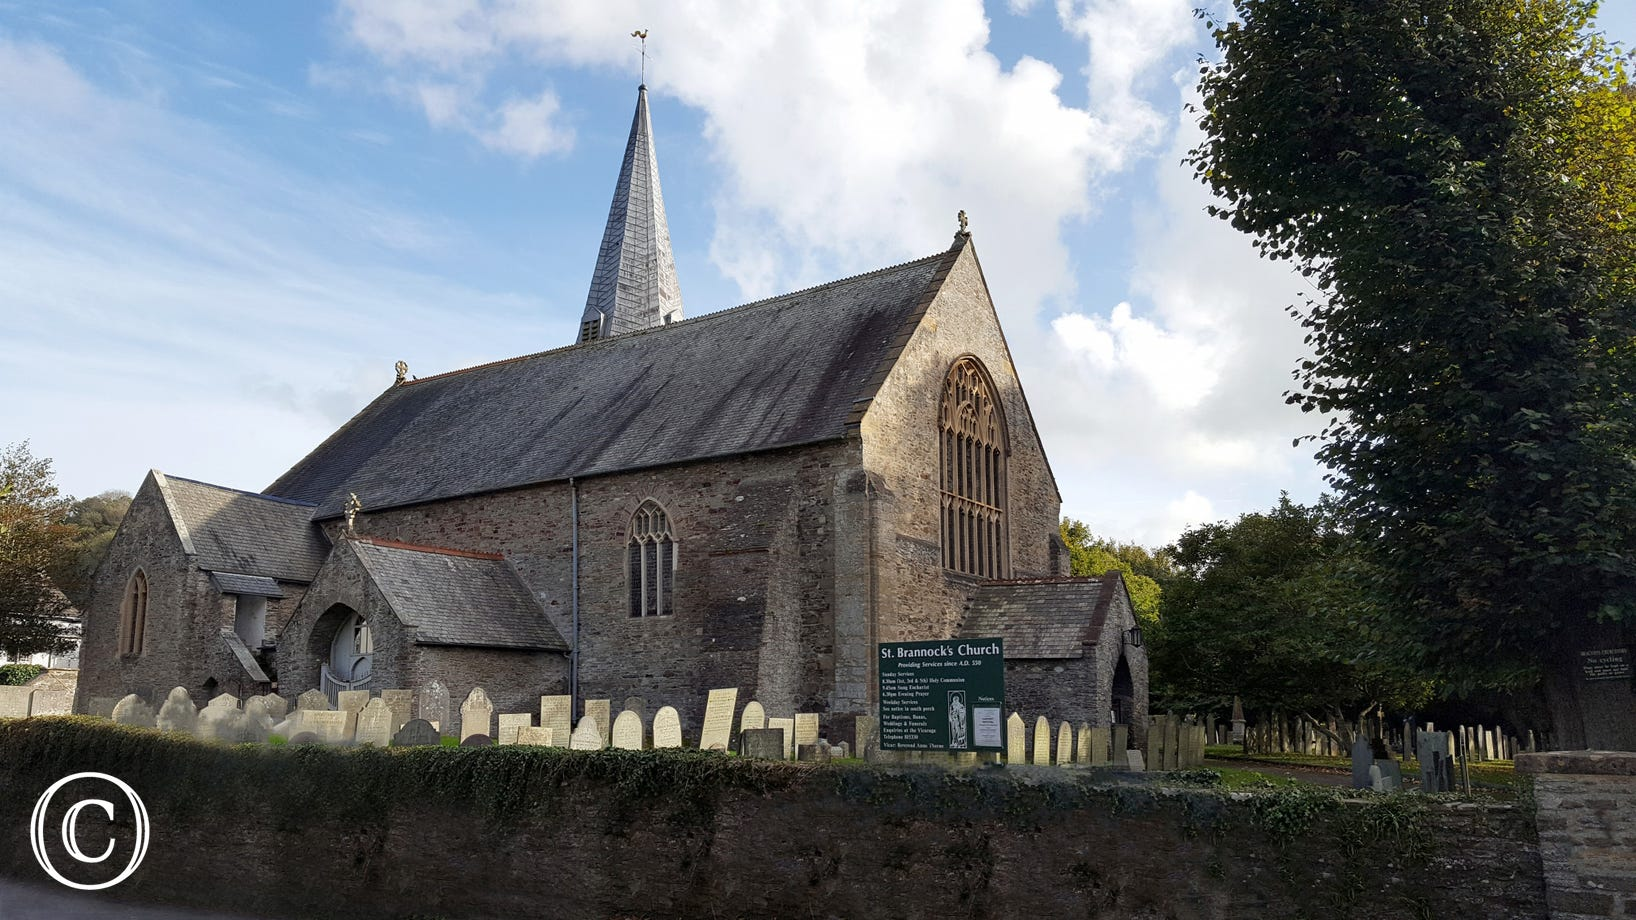 The picturesque Parish Church of Braunton